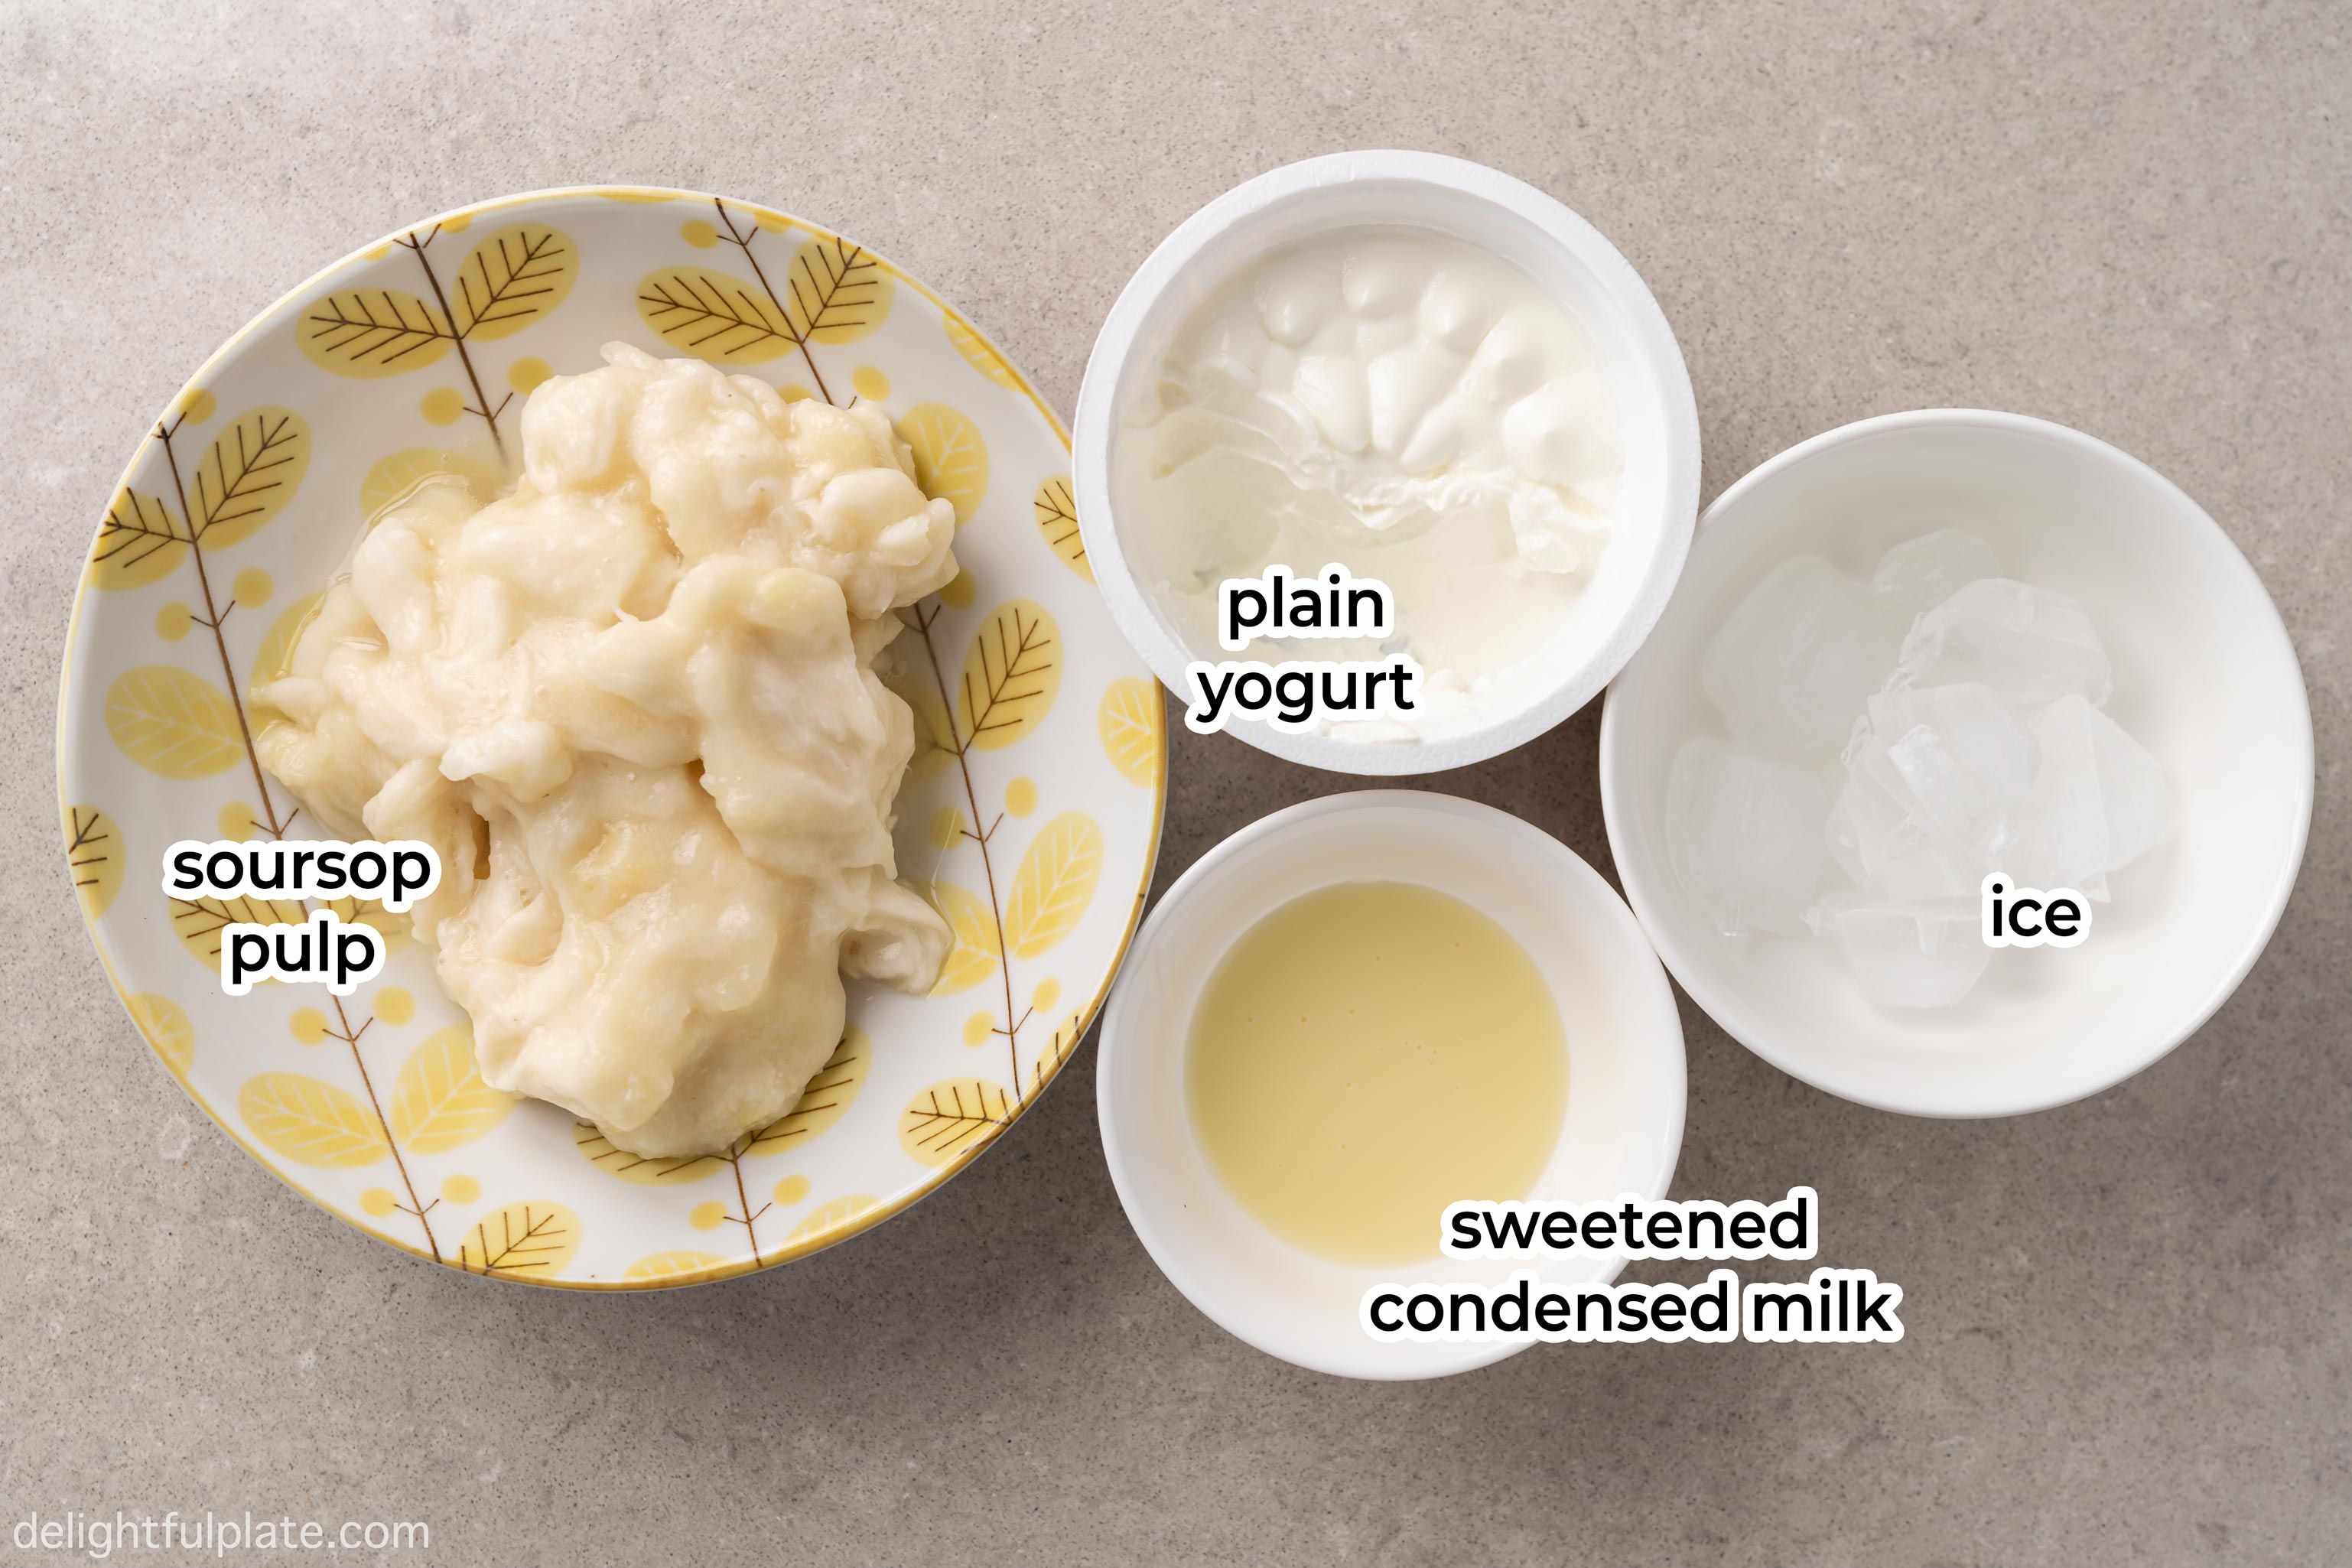 bowls containing ingredients to make soursop smoothie: soursop pulp, yogurt, sweetened condensed milk and ice